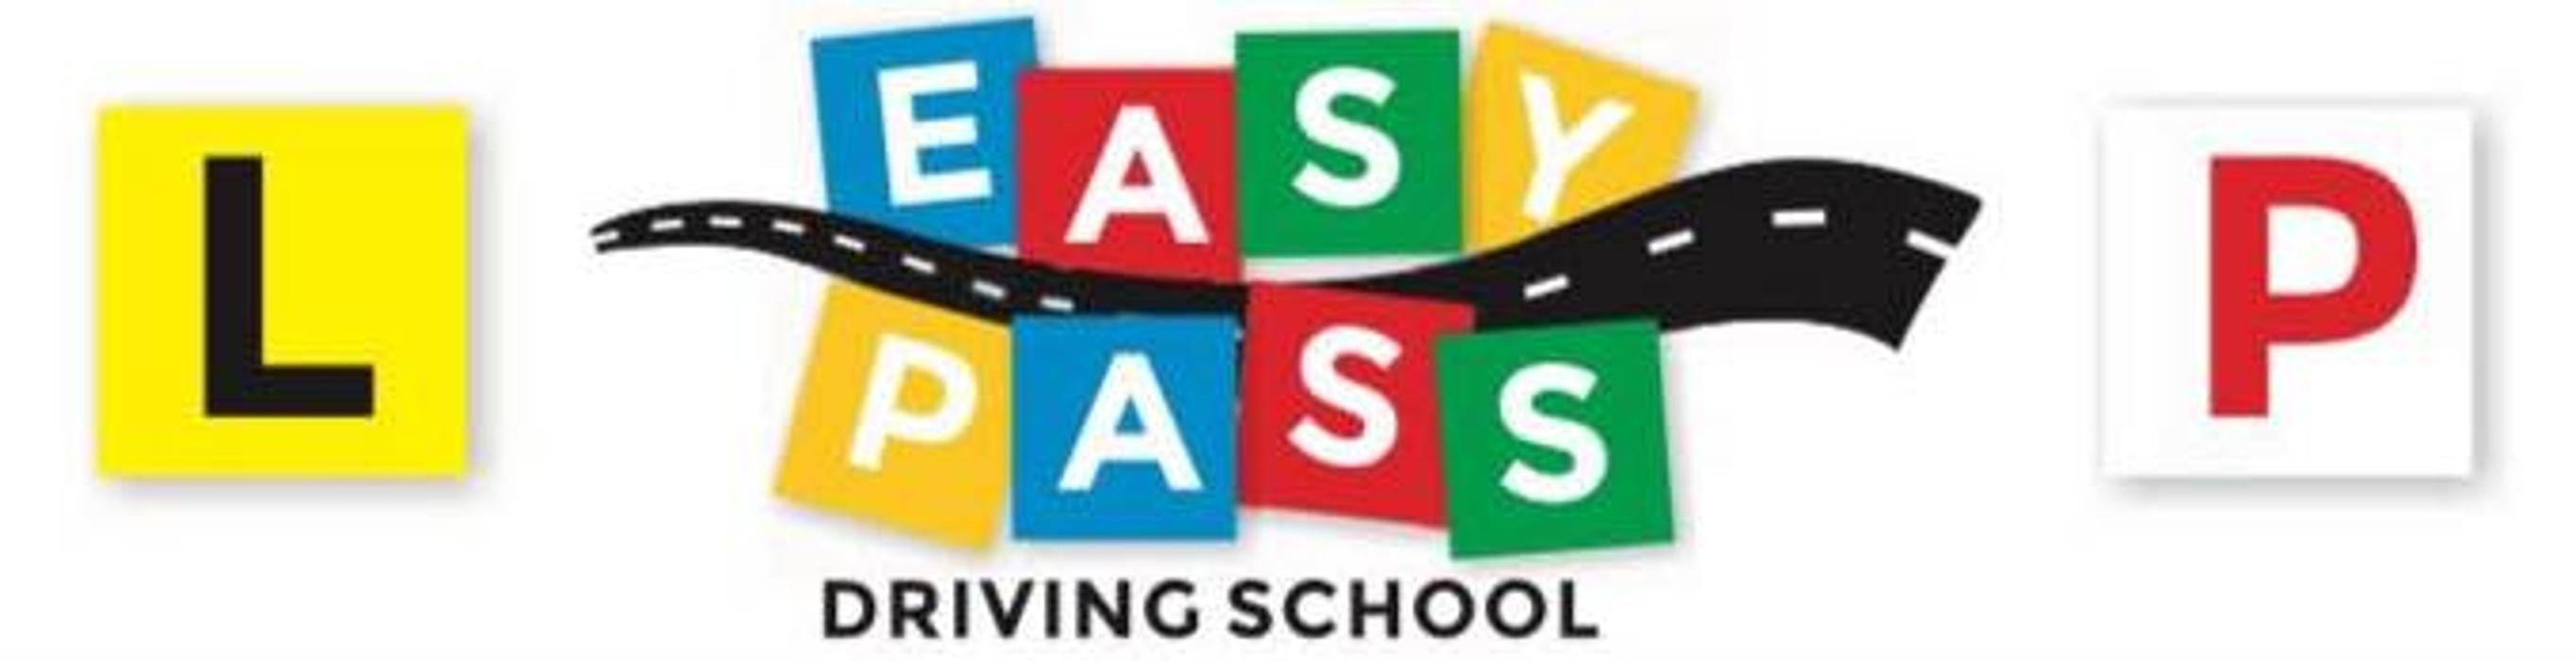 Easy Pass Driving School Melbourne